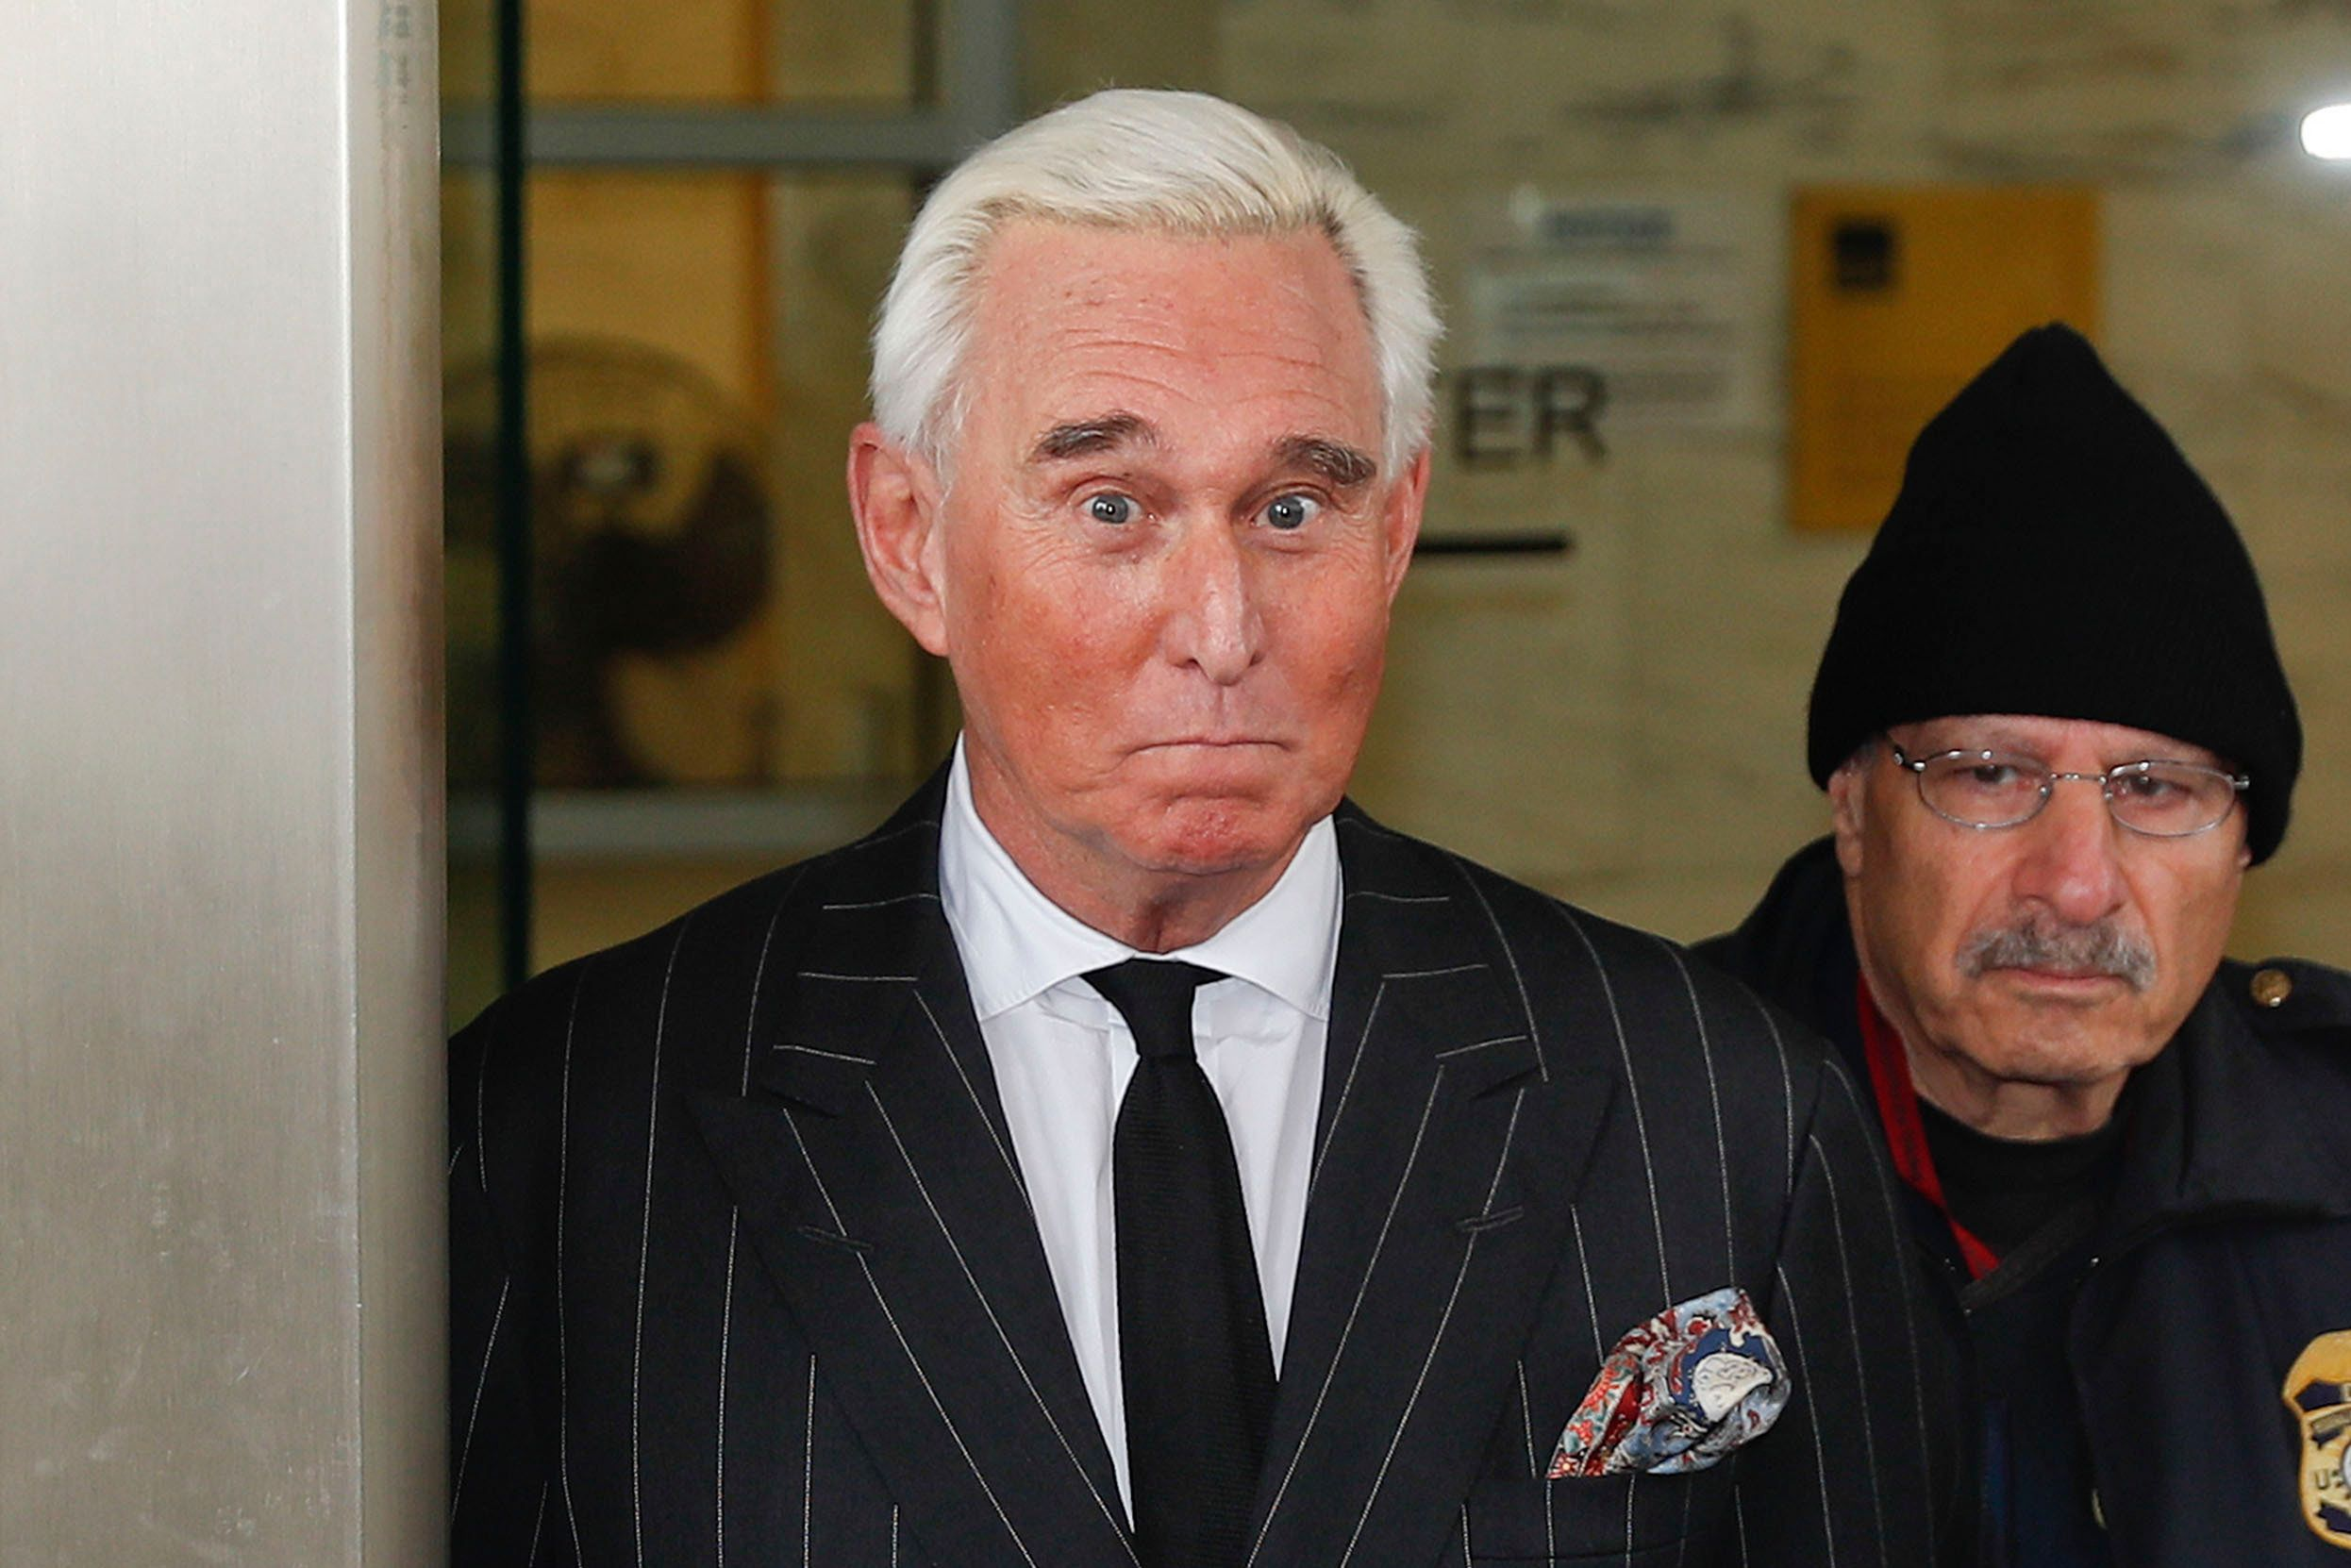 FILE - In this Feb. 1, 2019 file photo, former campaign adviser for President Donald Trump, Roger Stone, leaves federal court in Washington.  (AP Photo/Pablo Martinez Monsivais)